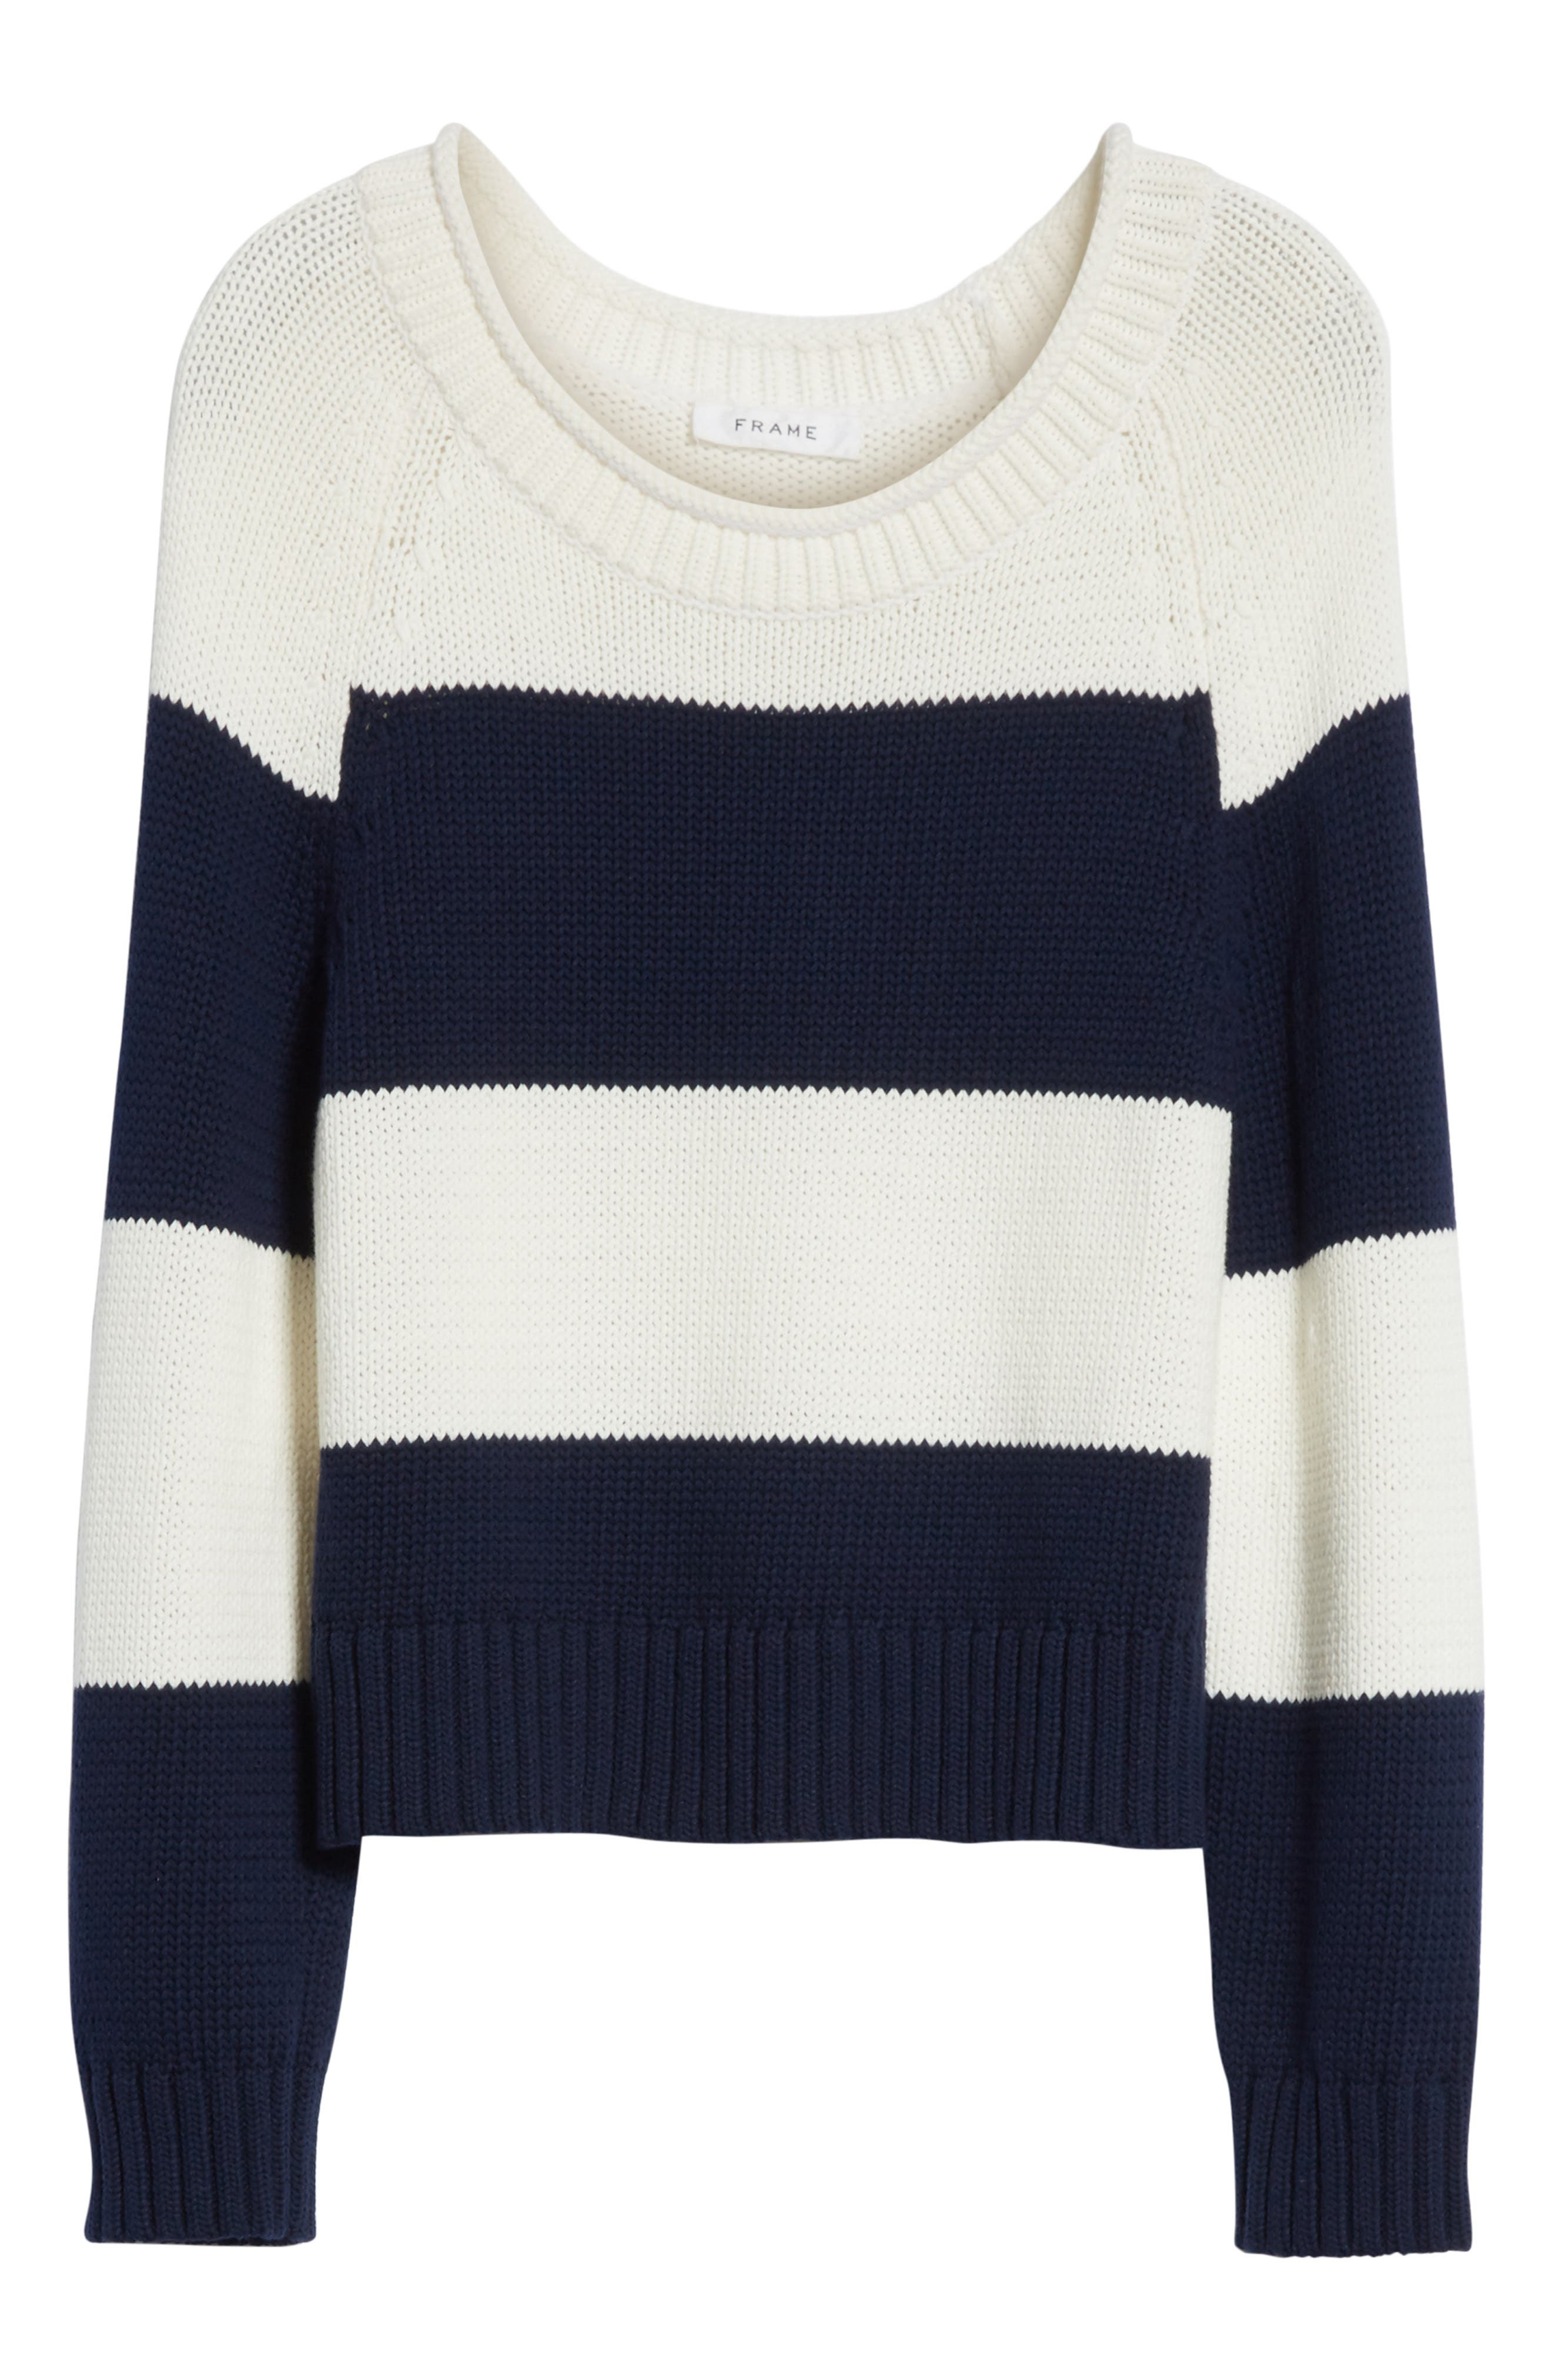 Stripe Cotton Blend Sweater,                             Alternate thumbnail 7, color,                             Off White/ Navy Stripe